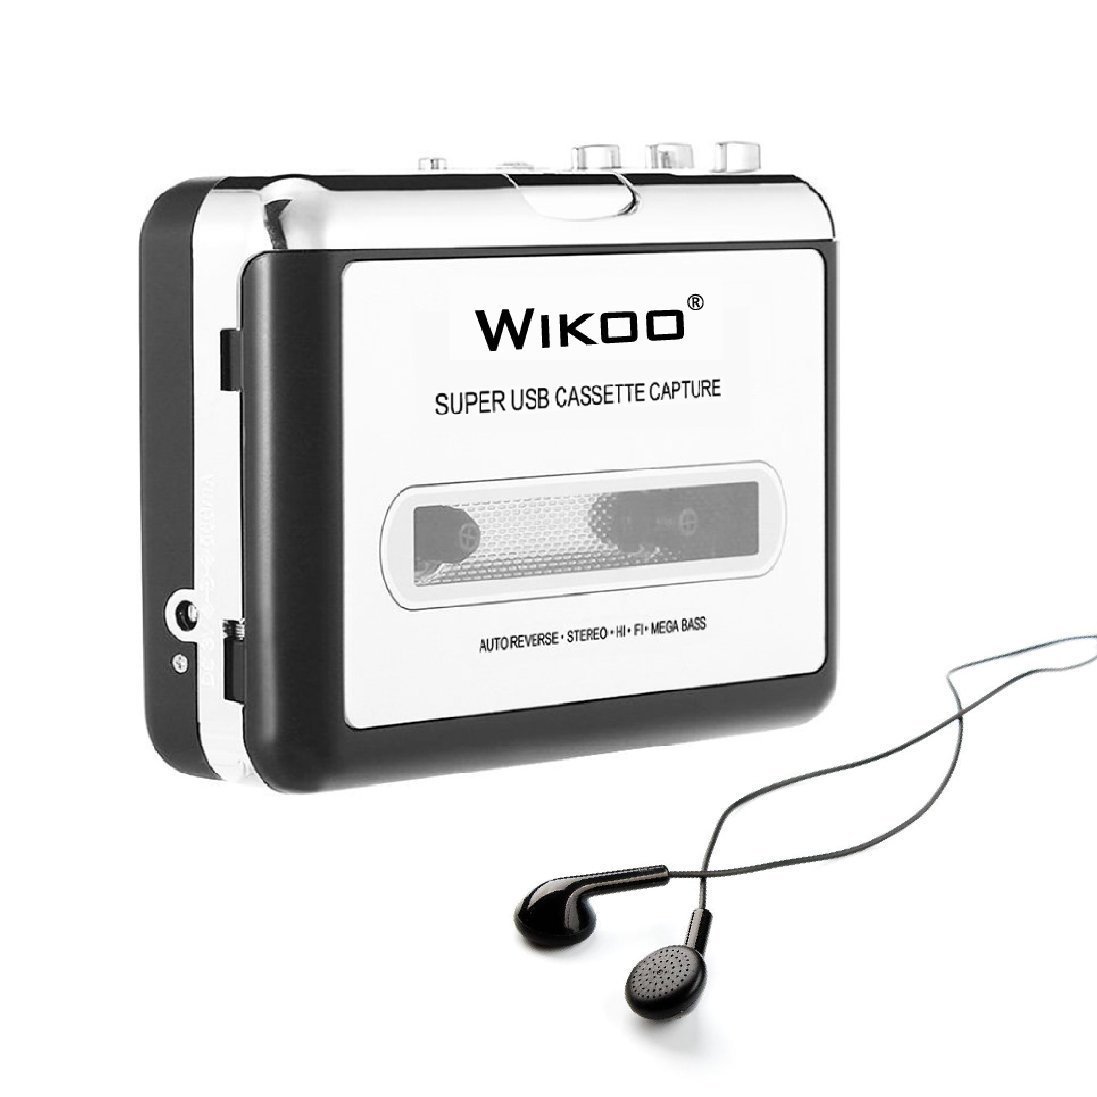 Wikoo Cassette Tape to MP3 CD converter via USB, Portable USB Cassette Tape Player Walkman Captures MP3 Audio Music -Compatible with Laptops and PC, Convert Tape Cassettes to MP3 Format